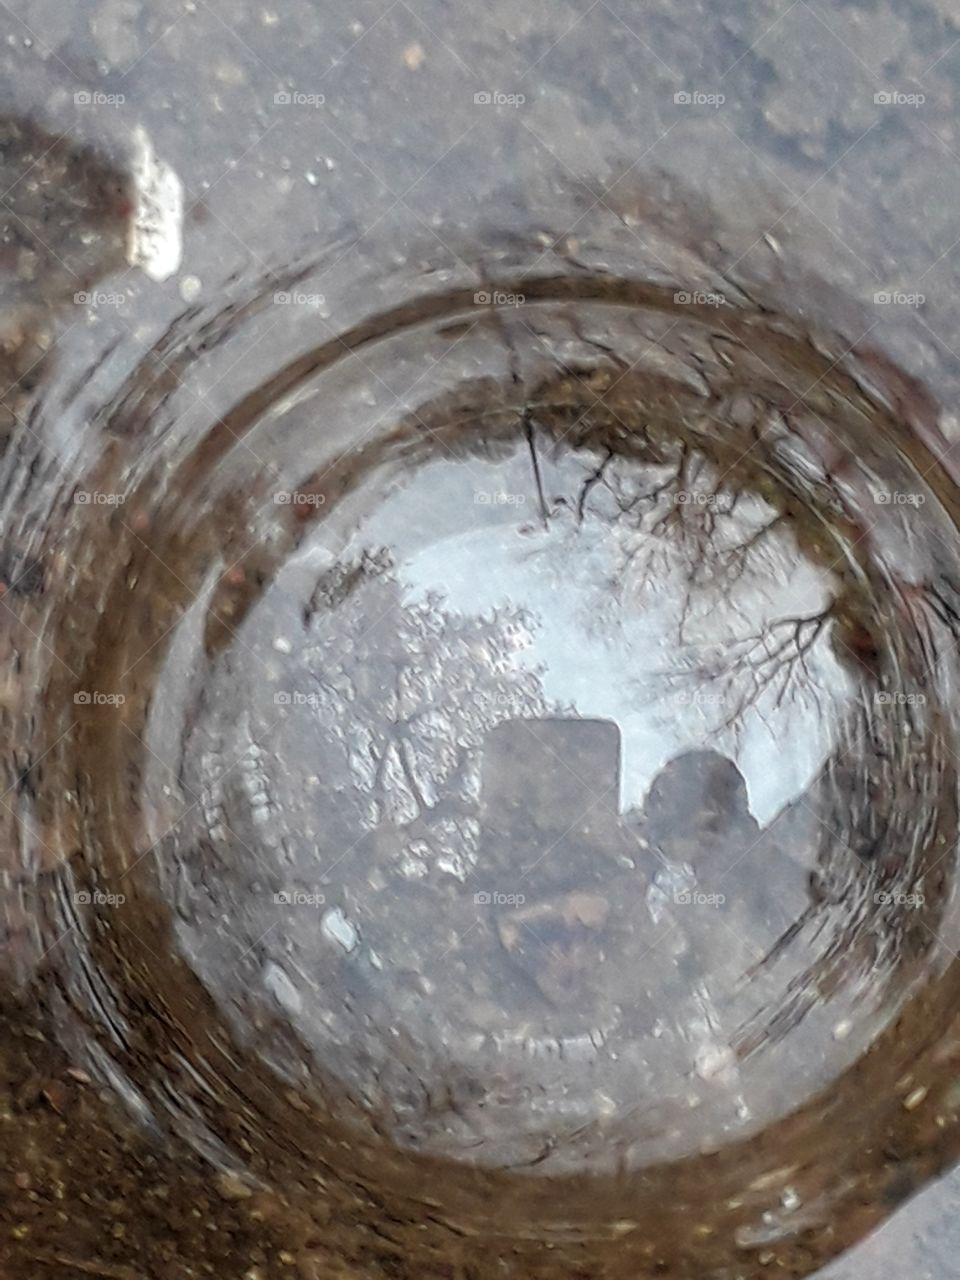 Rain water on the ground, reflection of rain water bubble